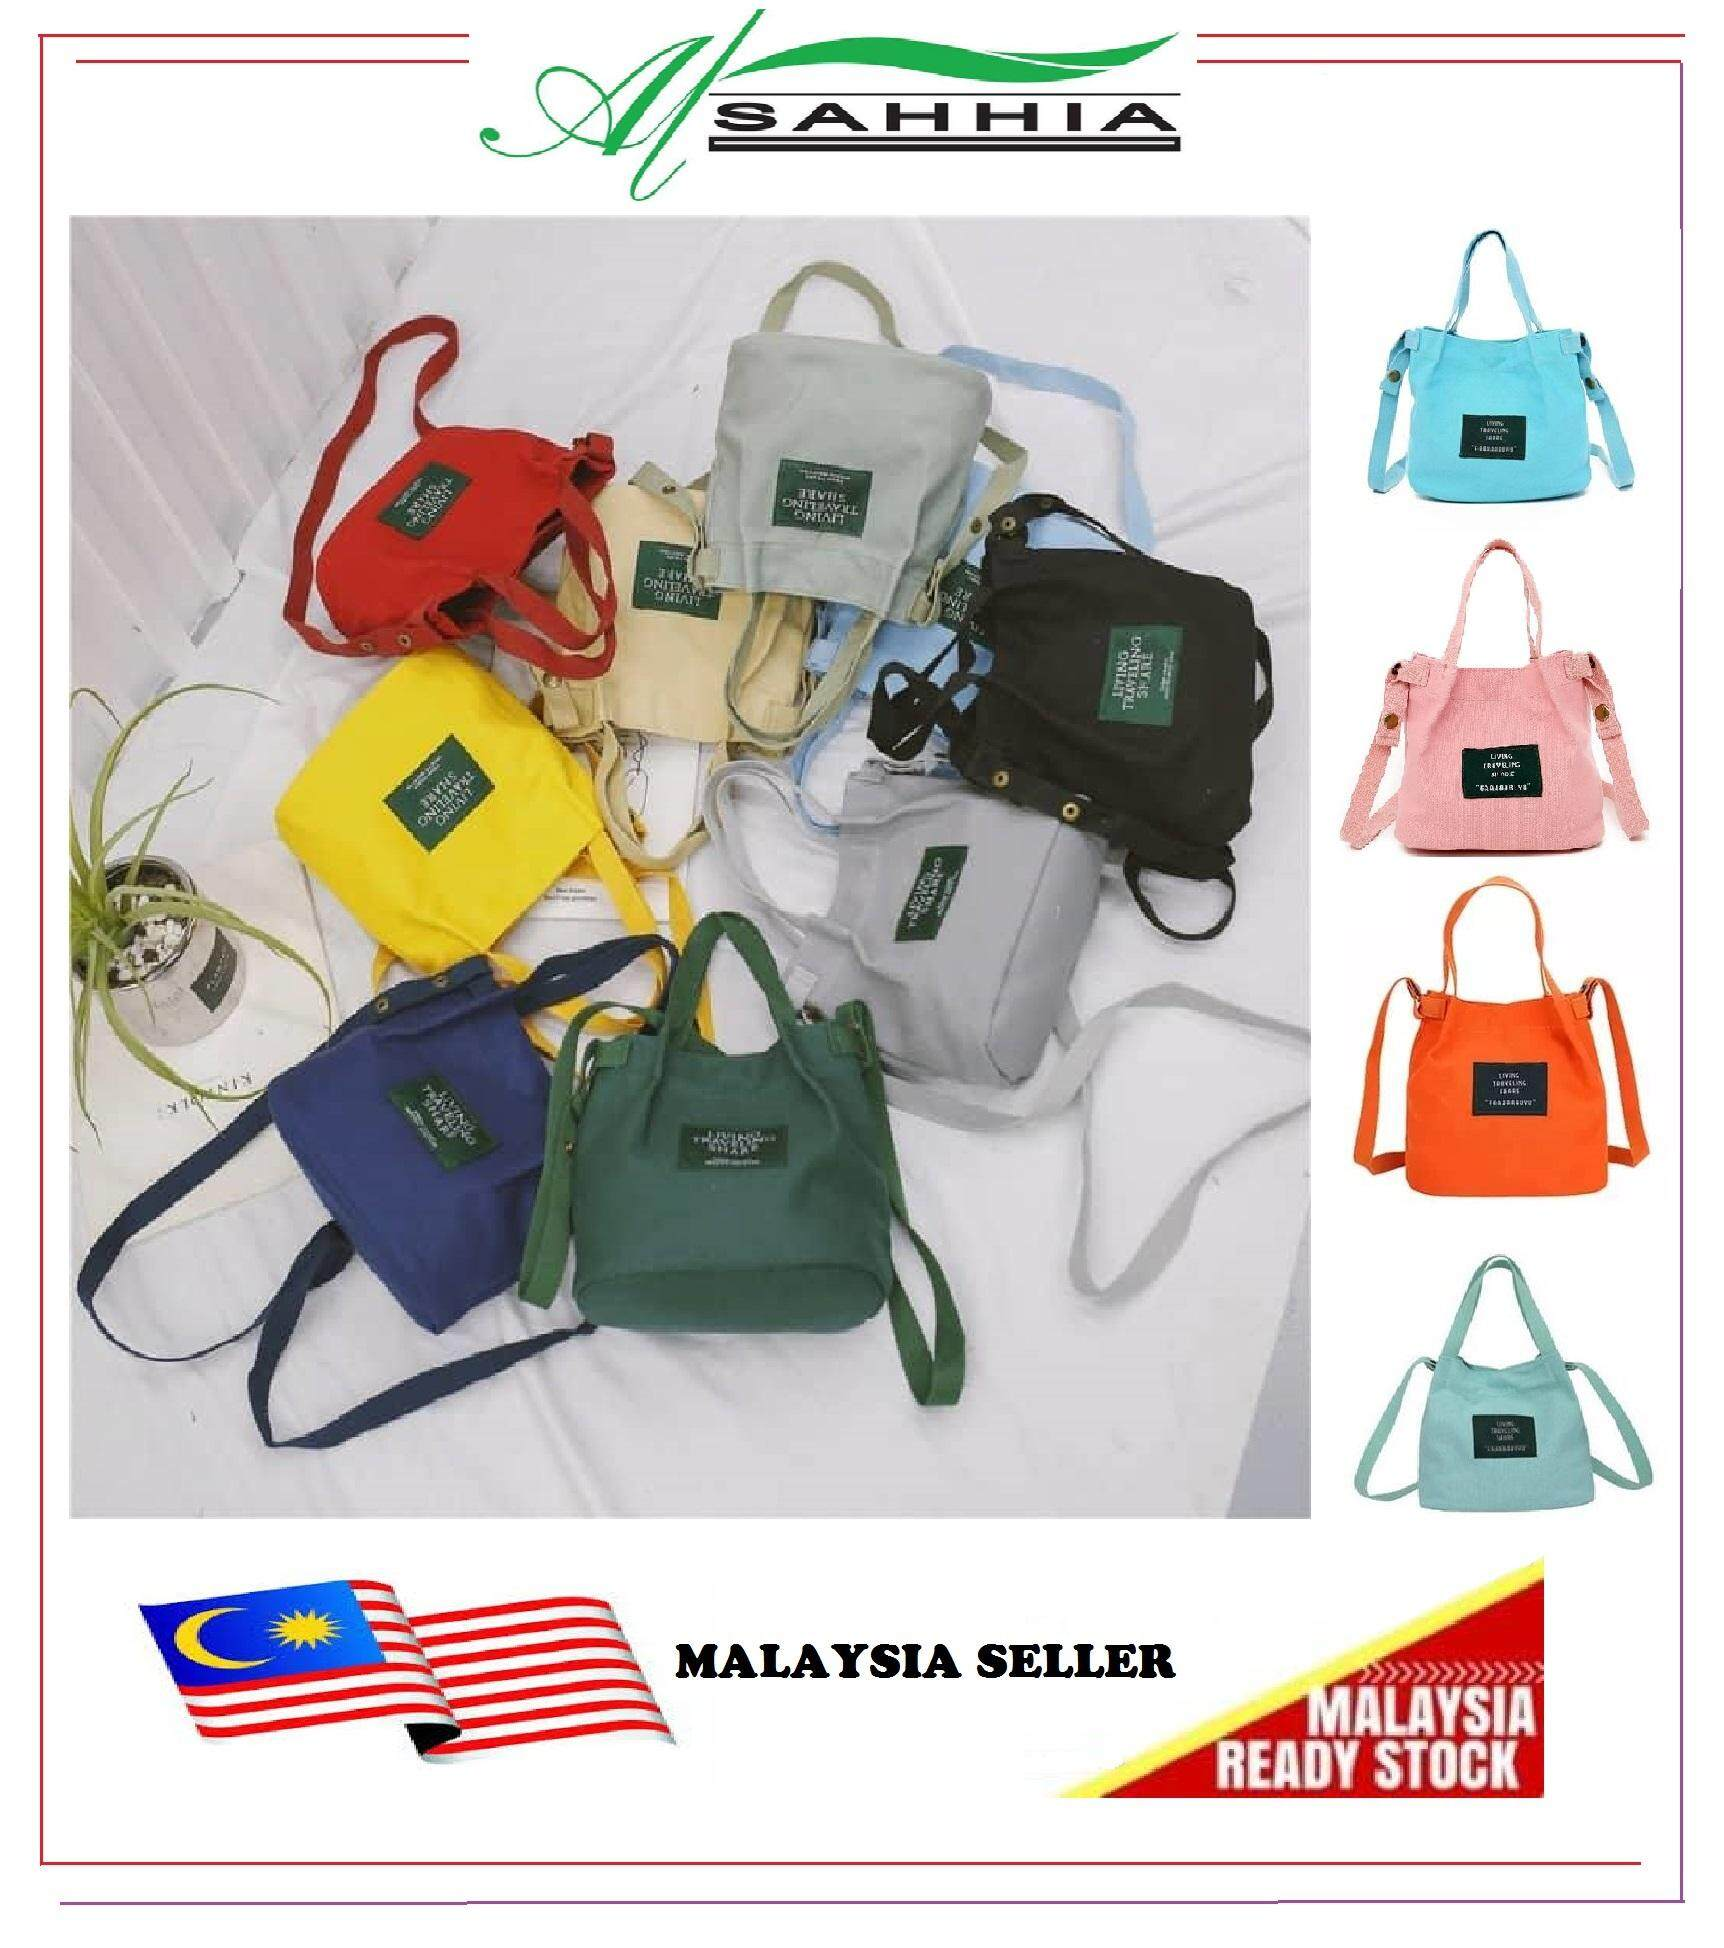 Latest Women s Bags Only on Lazada Malaysia! 7ff7af53824c7